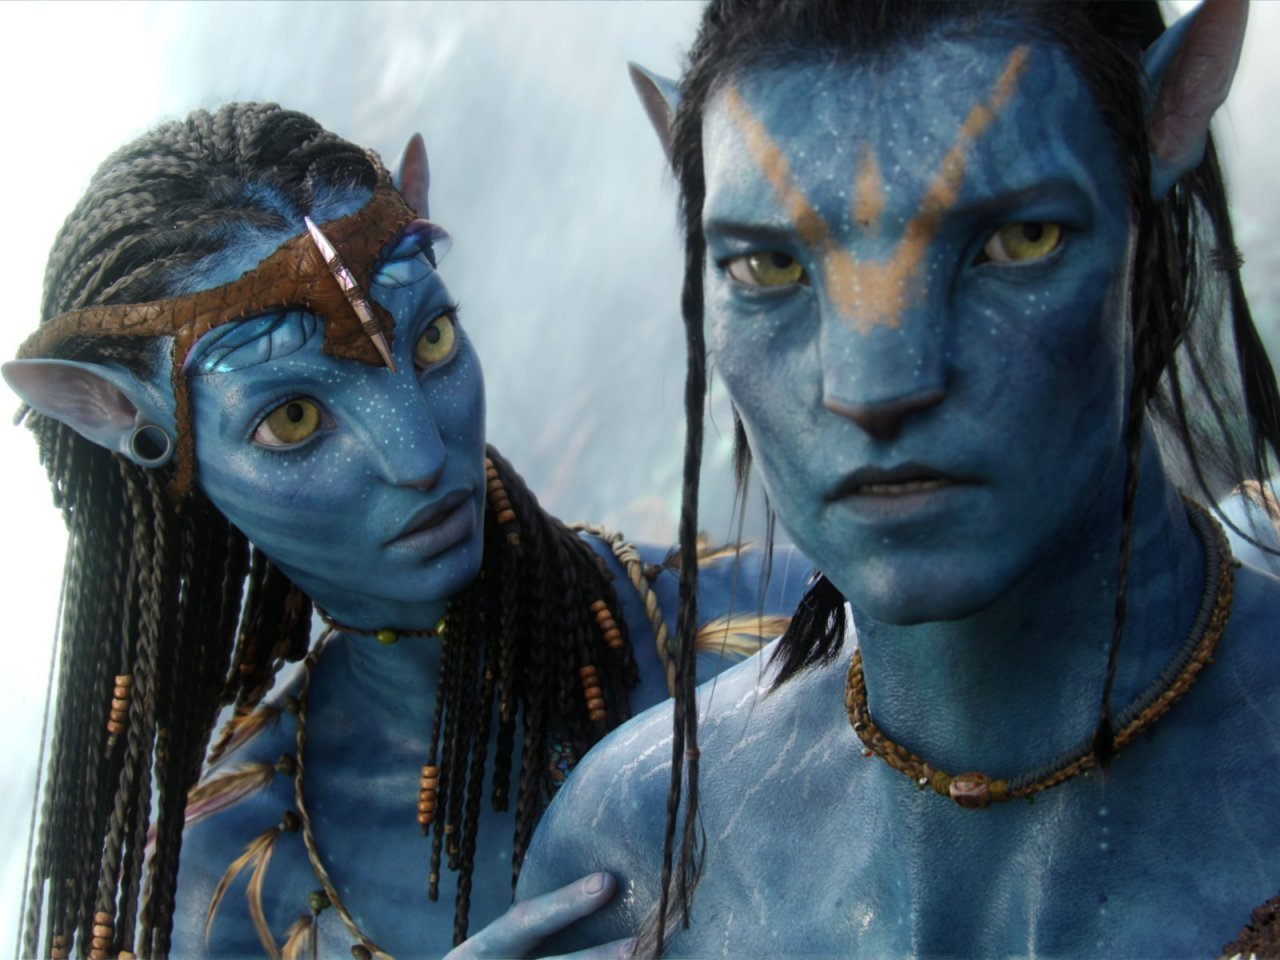 avatar image movie 2009 poster